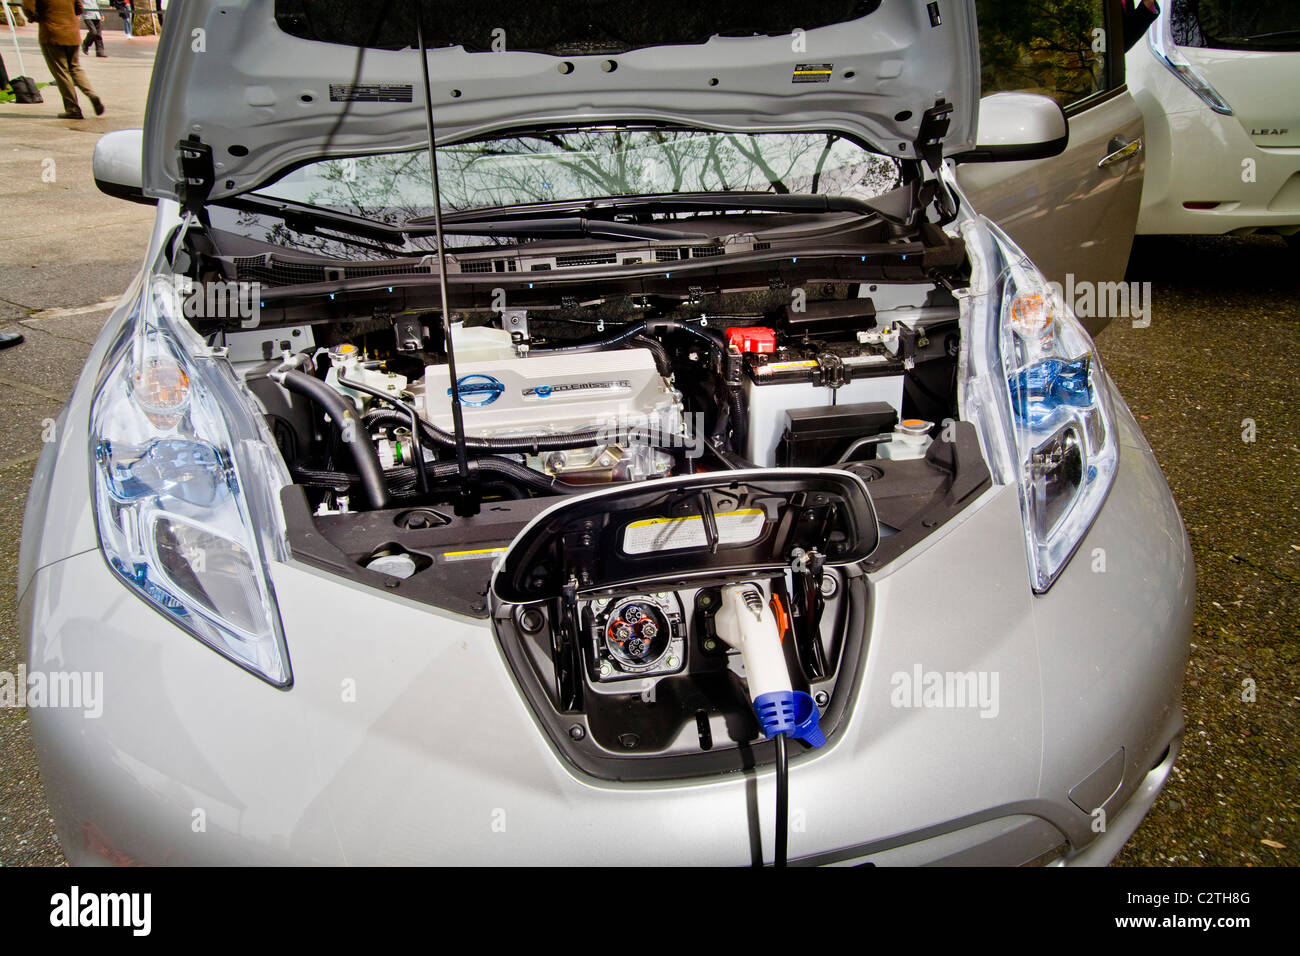 Engine compartment and charging port of the Nissan Leaf, a five-door mid-size hatchback all-electric zero-emissions - Stock Image